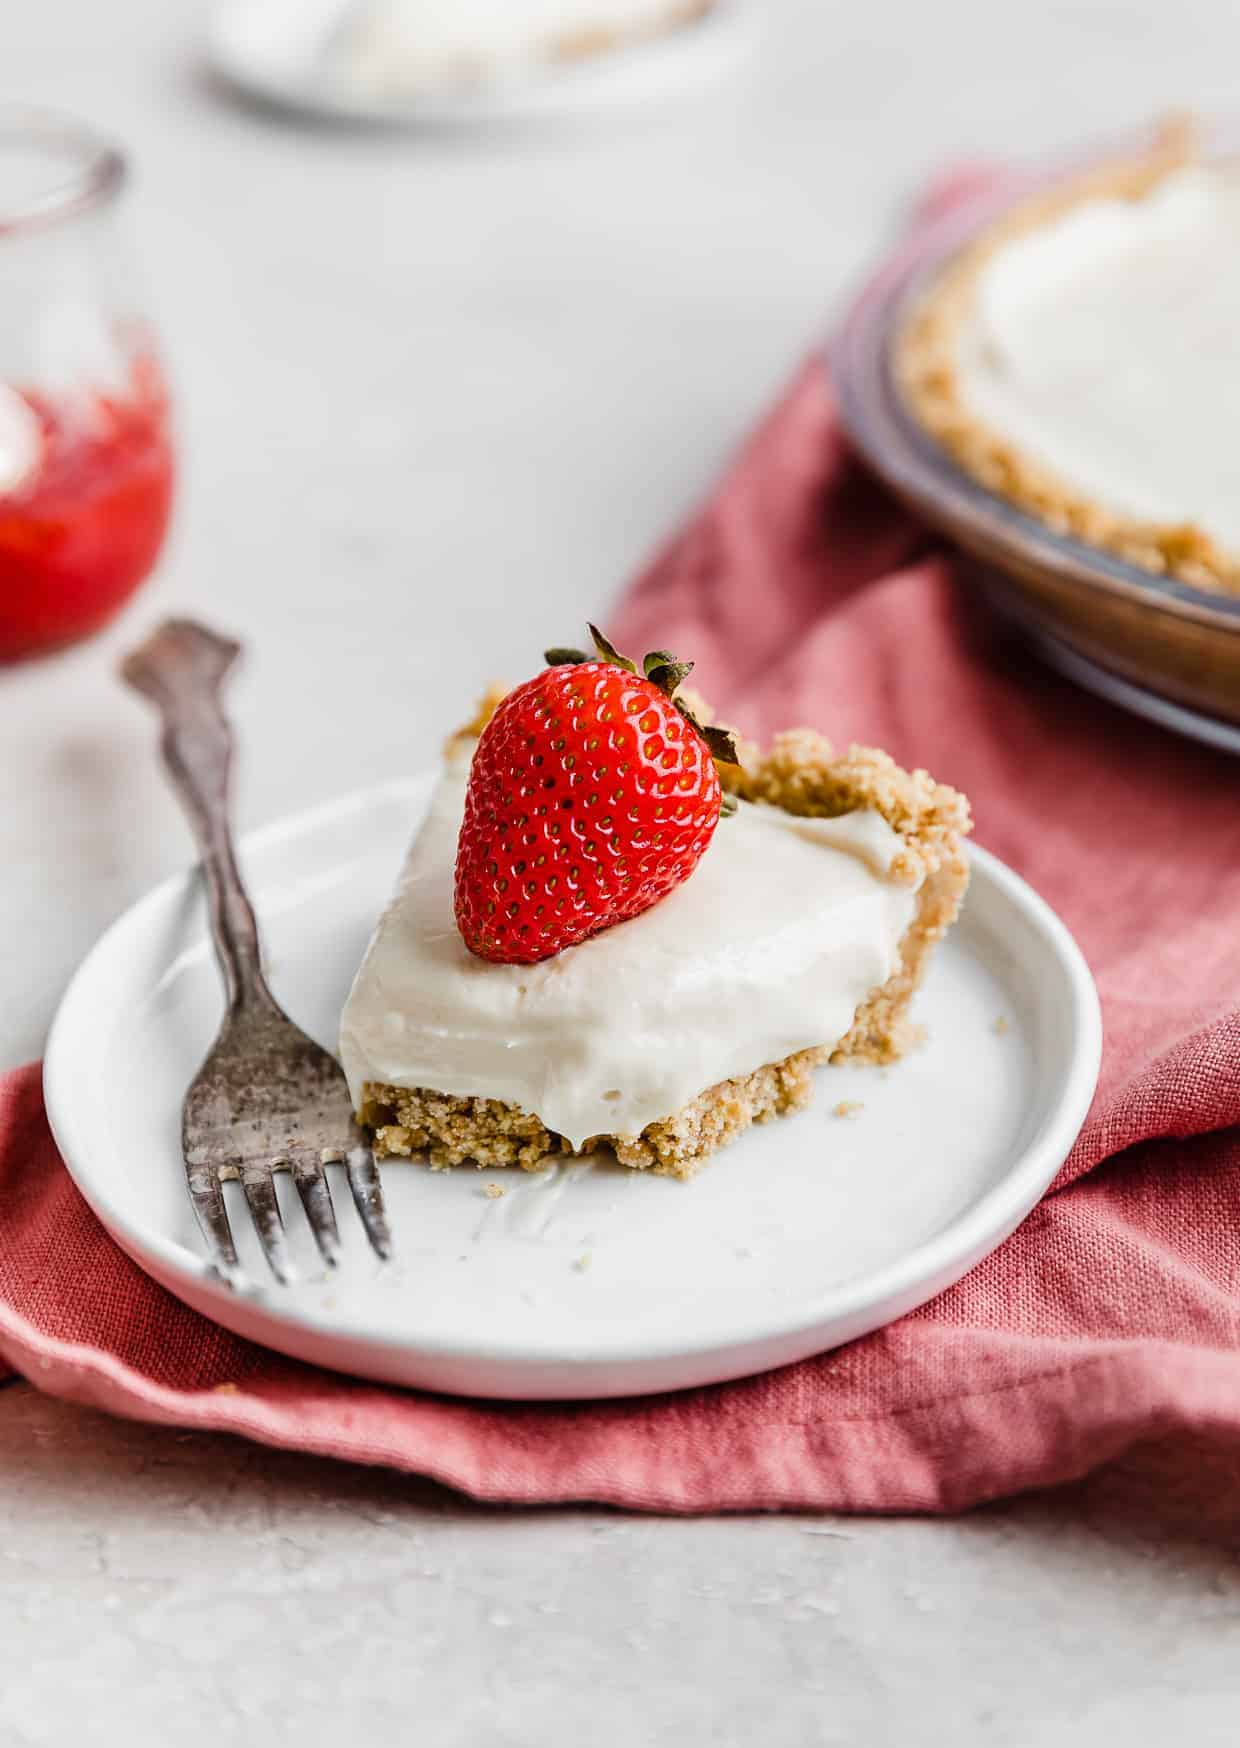 A strawberry on top of a slice of no-bake cheesecake on a white plate with a fork next to the cheesecake.